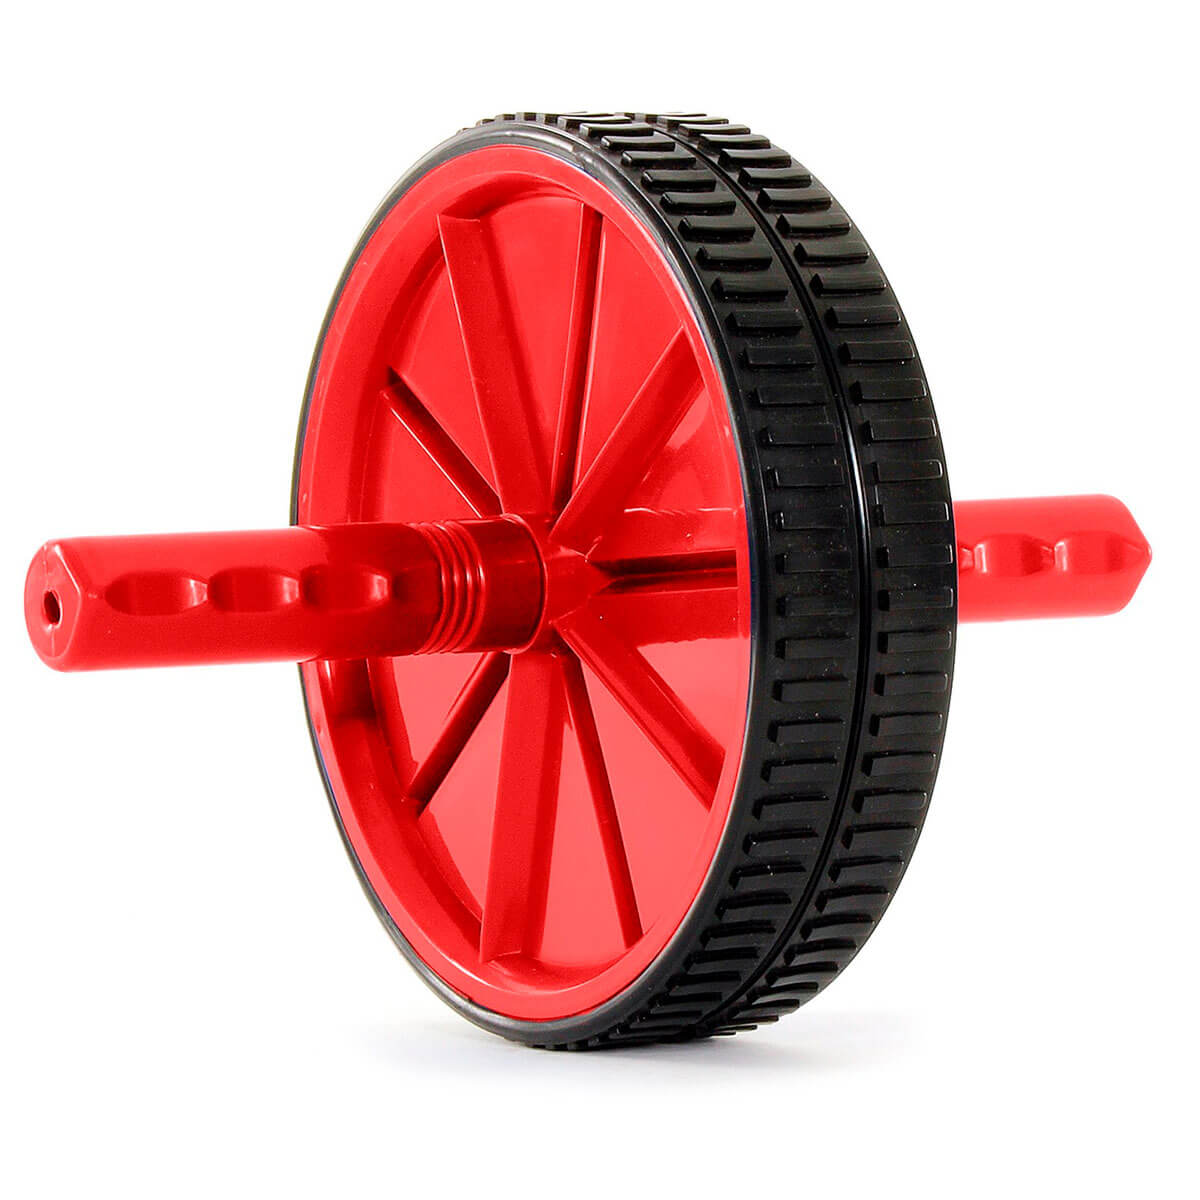 Prosource Ab Wheel - Abdominal Exercise Equipment with Handles red